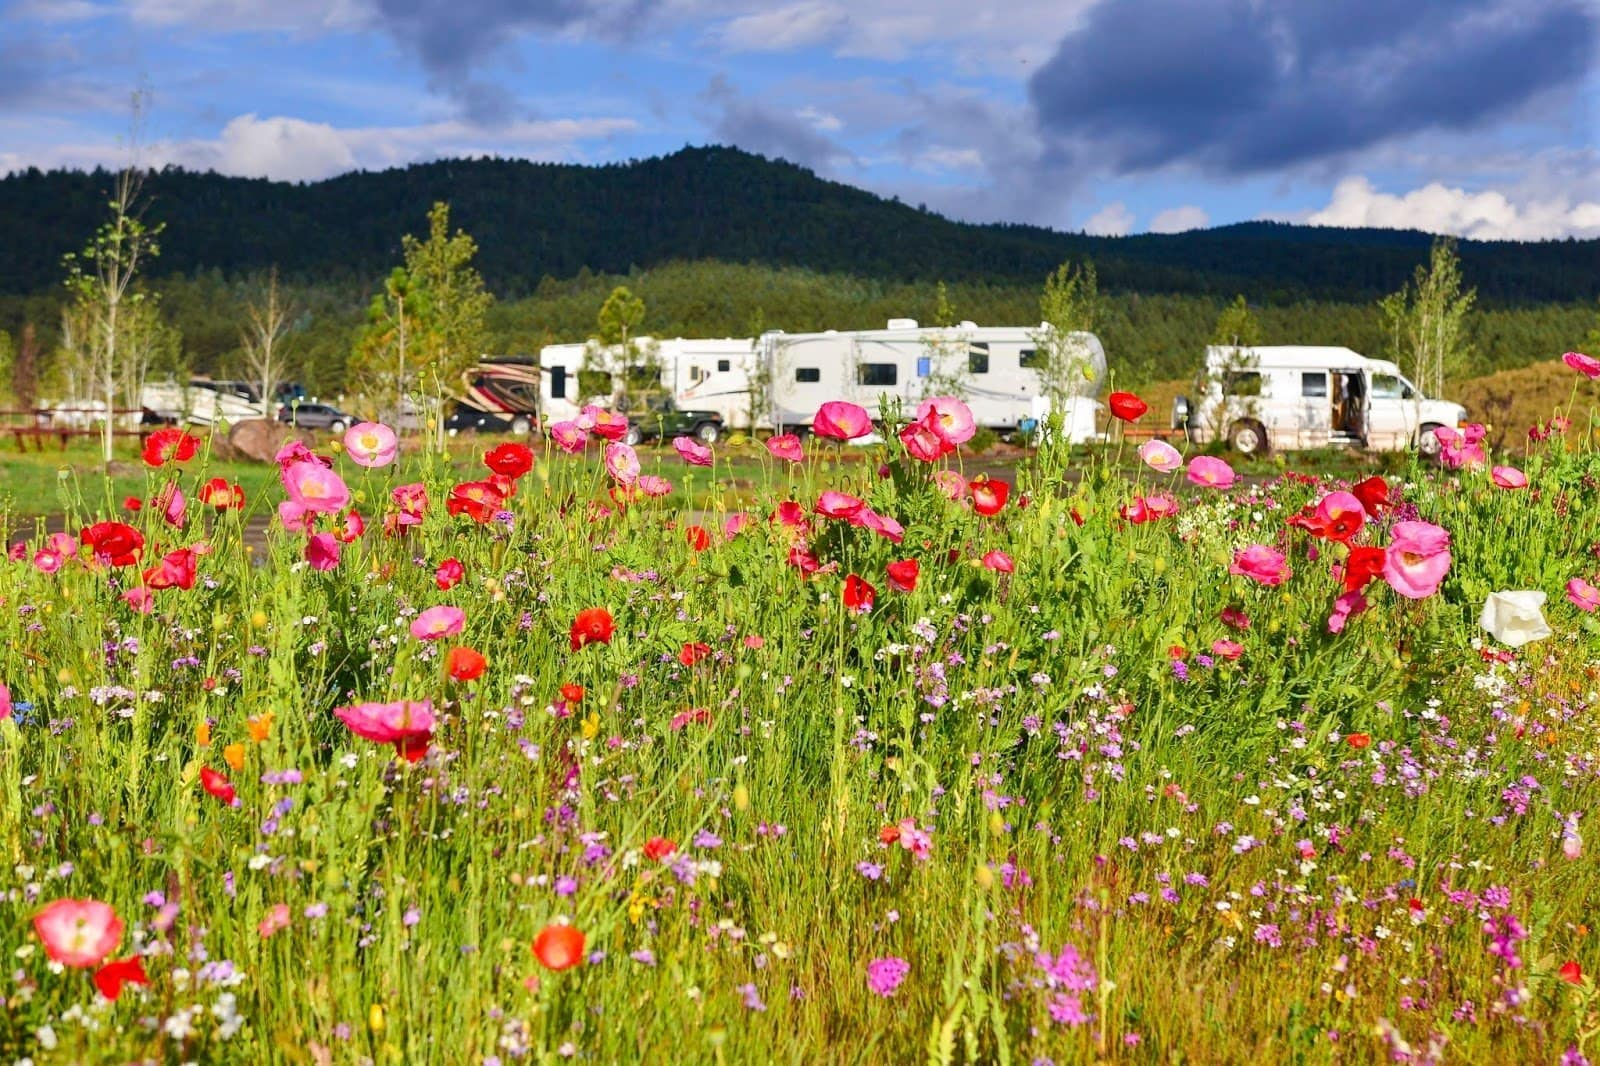 Planning 'Last of Summer' escape? Think 'Angel Fire Food and Wine Roundup'